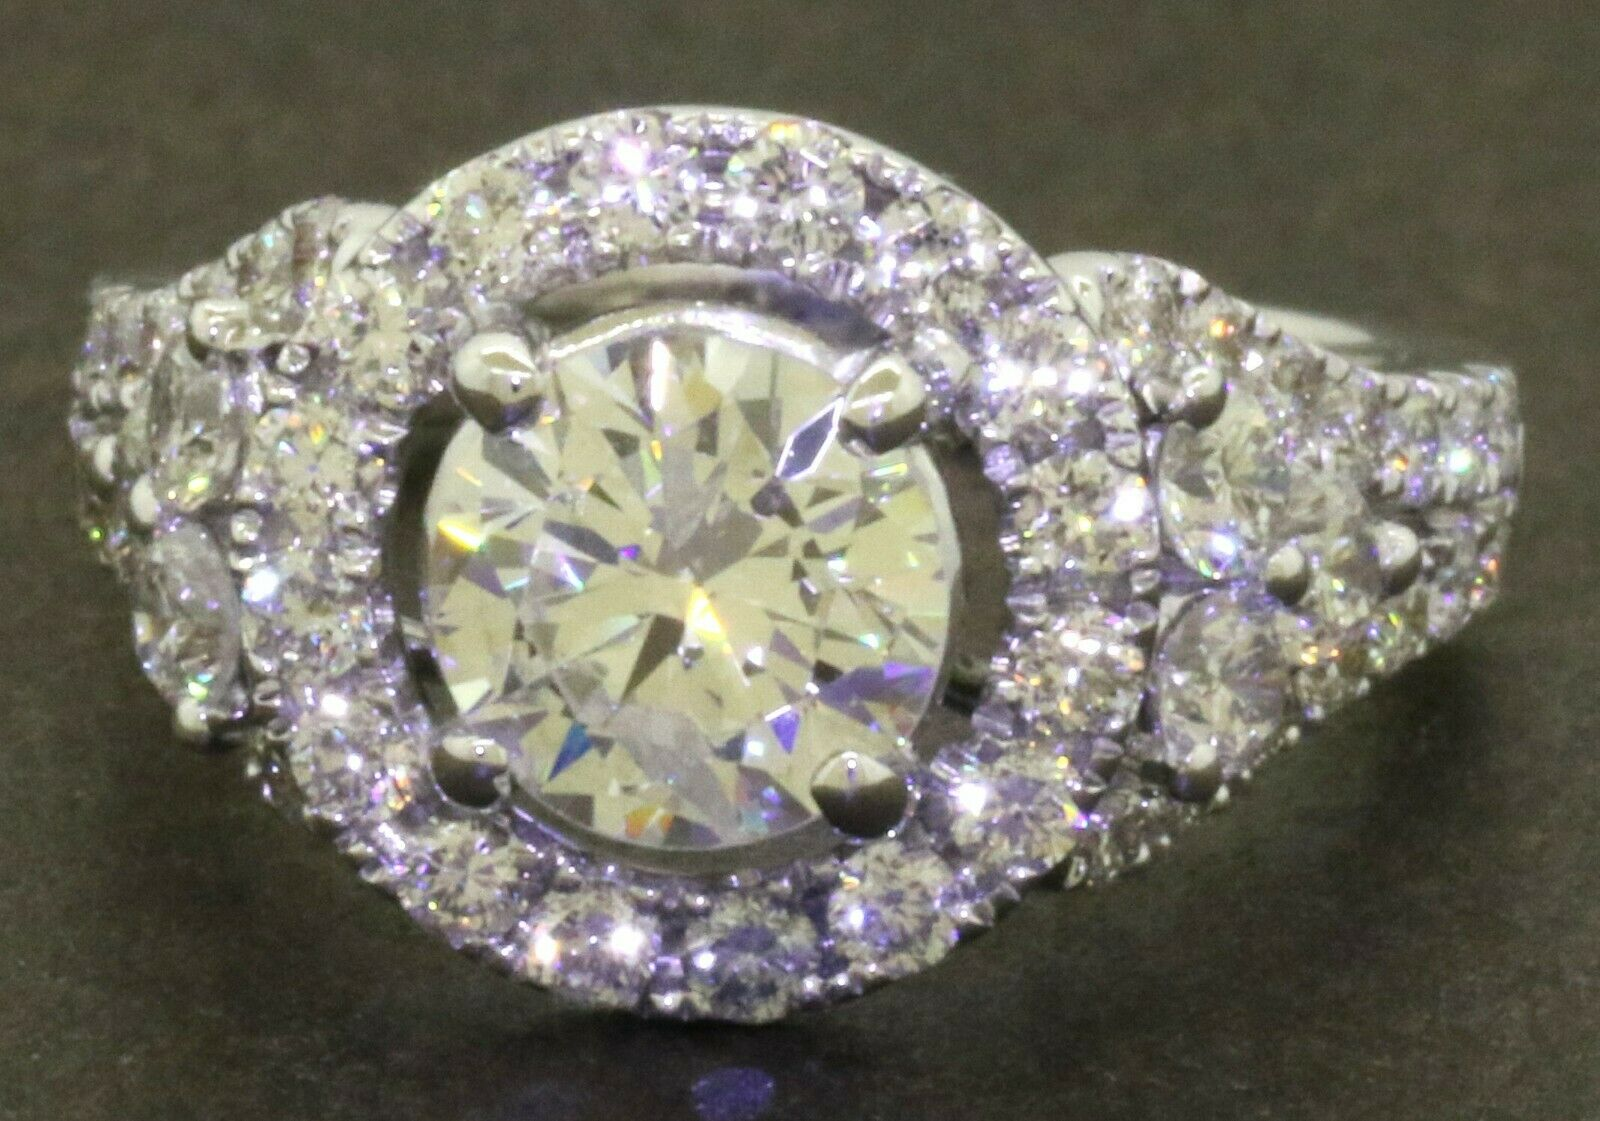 18K WG 2.35CTW diamond halo wedding/engagement ring w/ 1.11CT ctr. size 4.75